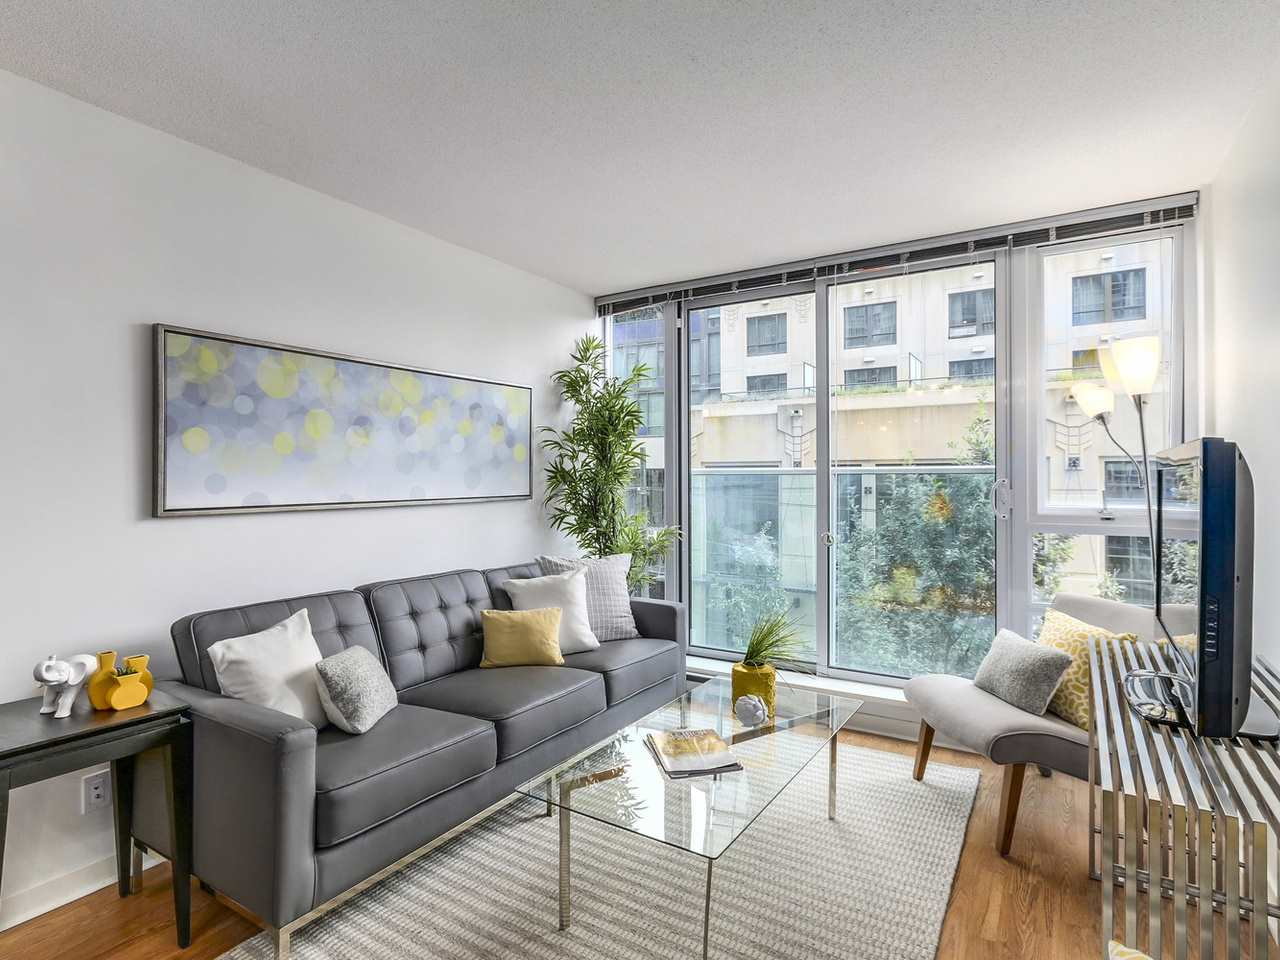 ATTENTION INVESTORS & HOME BUYERS! 2 bedrooms + 2 baths + den unit with upgraded high-quality laminate flooring, granite counters, stainless steel appliances package and a soaker tub along with en-suite w/d ensure ultimate comfort. Located in the heart of Downtown, walk to shops, restaurants, cafes, library, SkyTrain, bus stops. Low maintenance fee includes sauna, steam room, hot tub, exercise/weight/yoga room, theater room, party/game room, meeting room & 24 hrs concierge. Very easy to rent (rest: min 6 months) Open House Sat July 16th and Sun July 17th from 2pm-4pm.